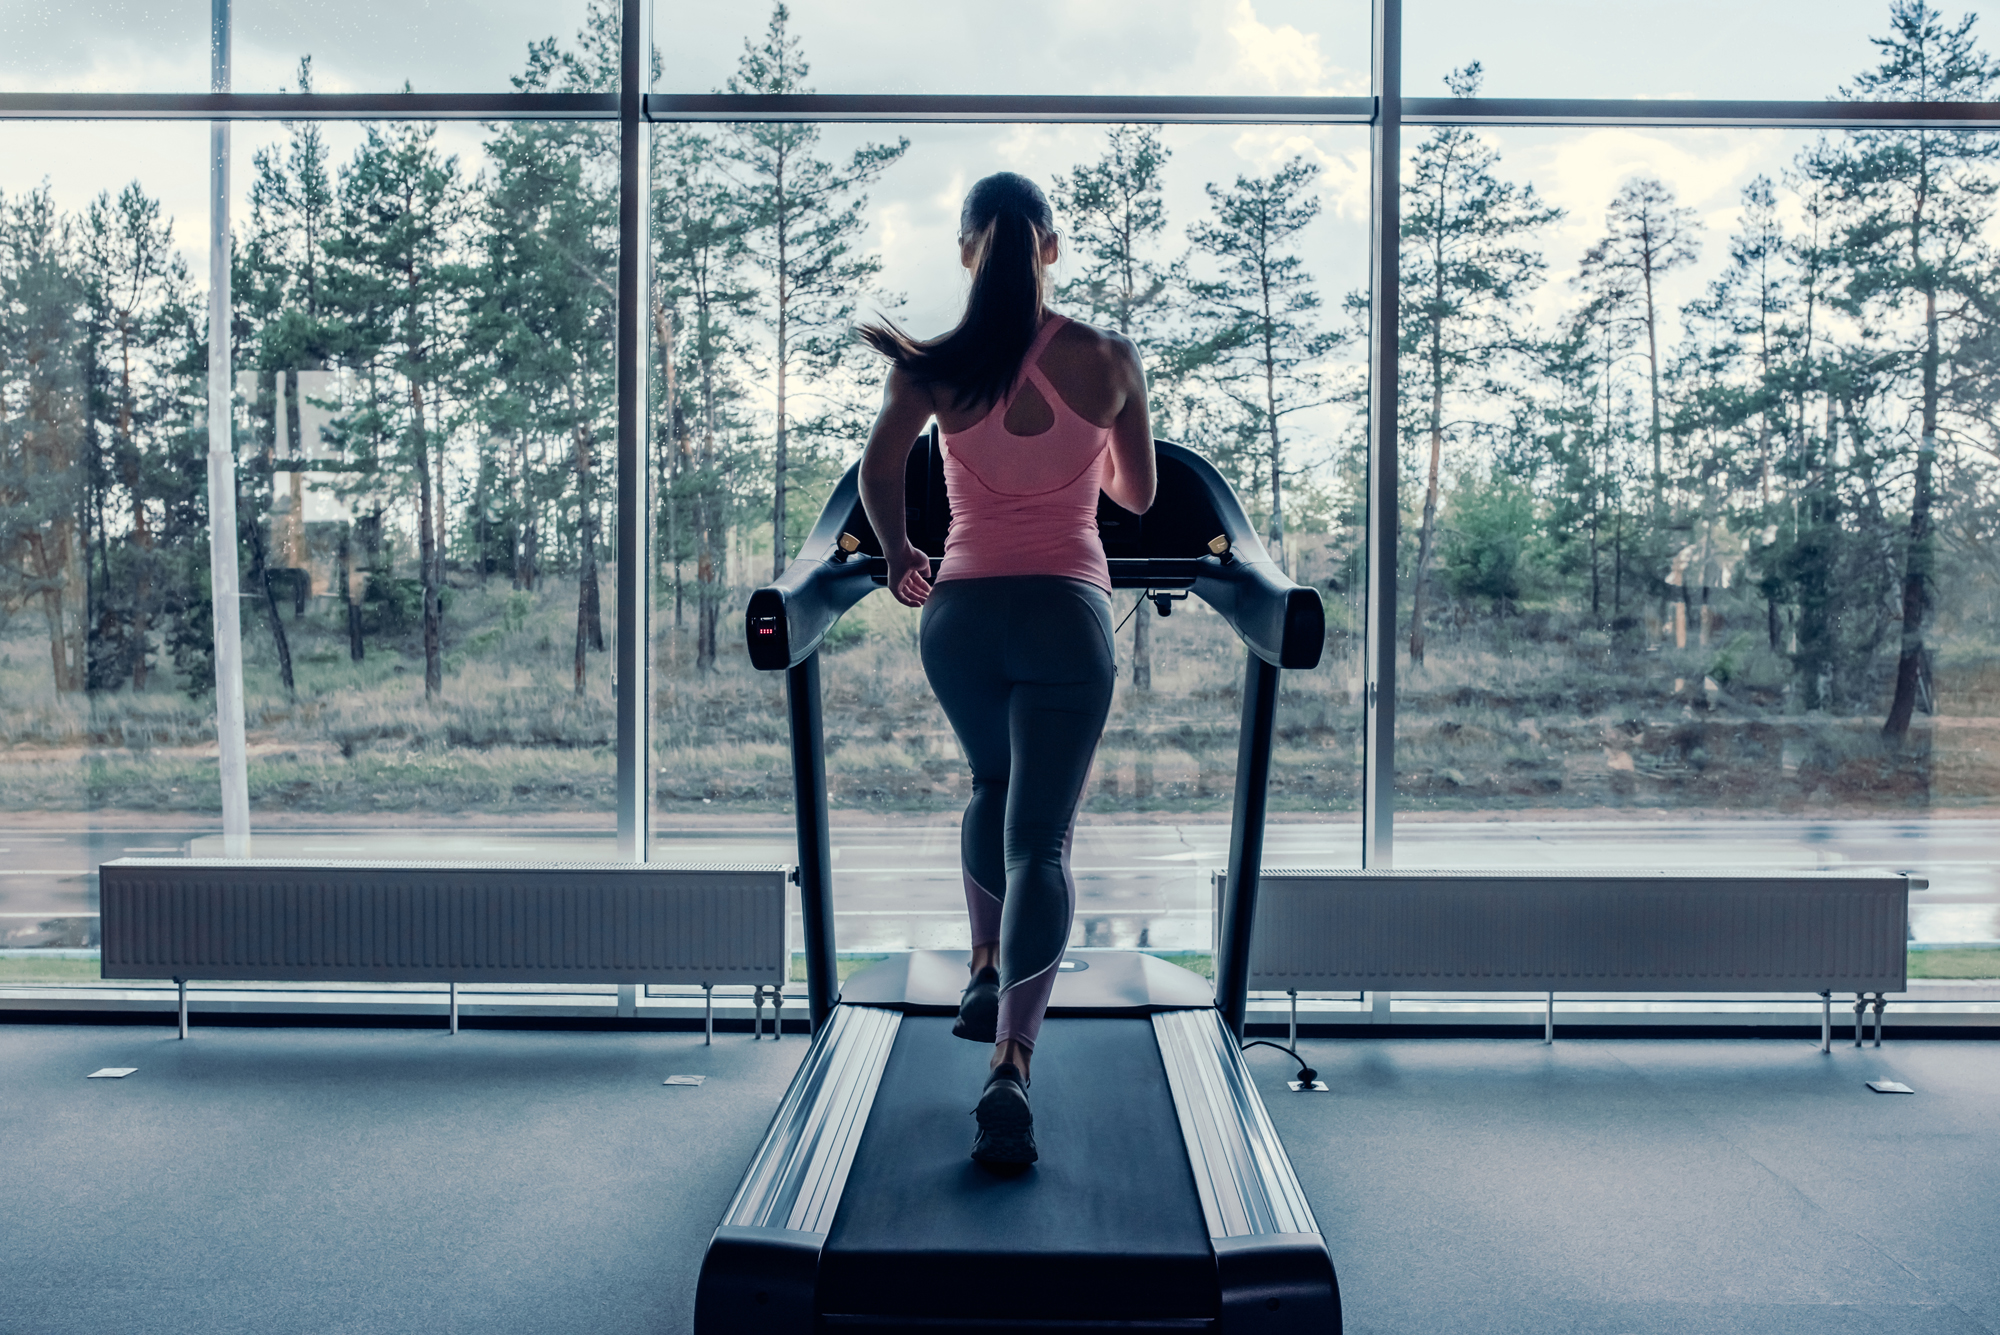 treadmill workout features